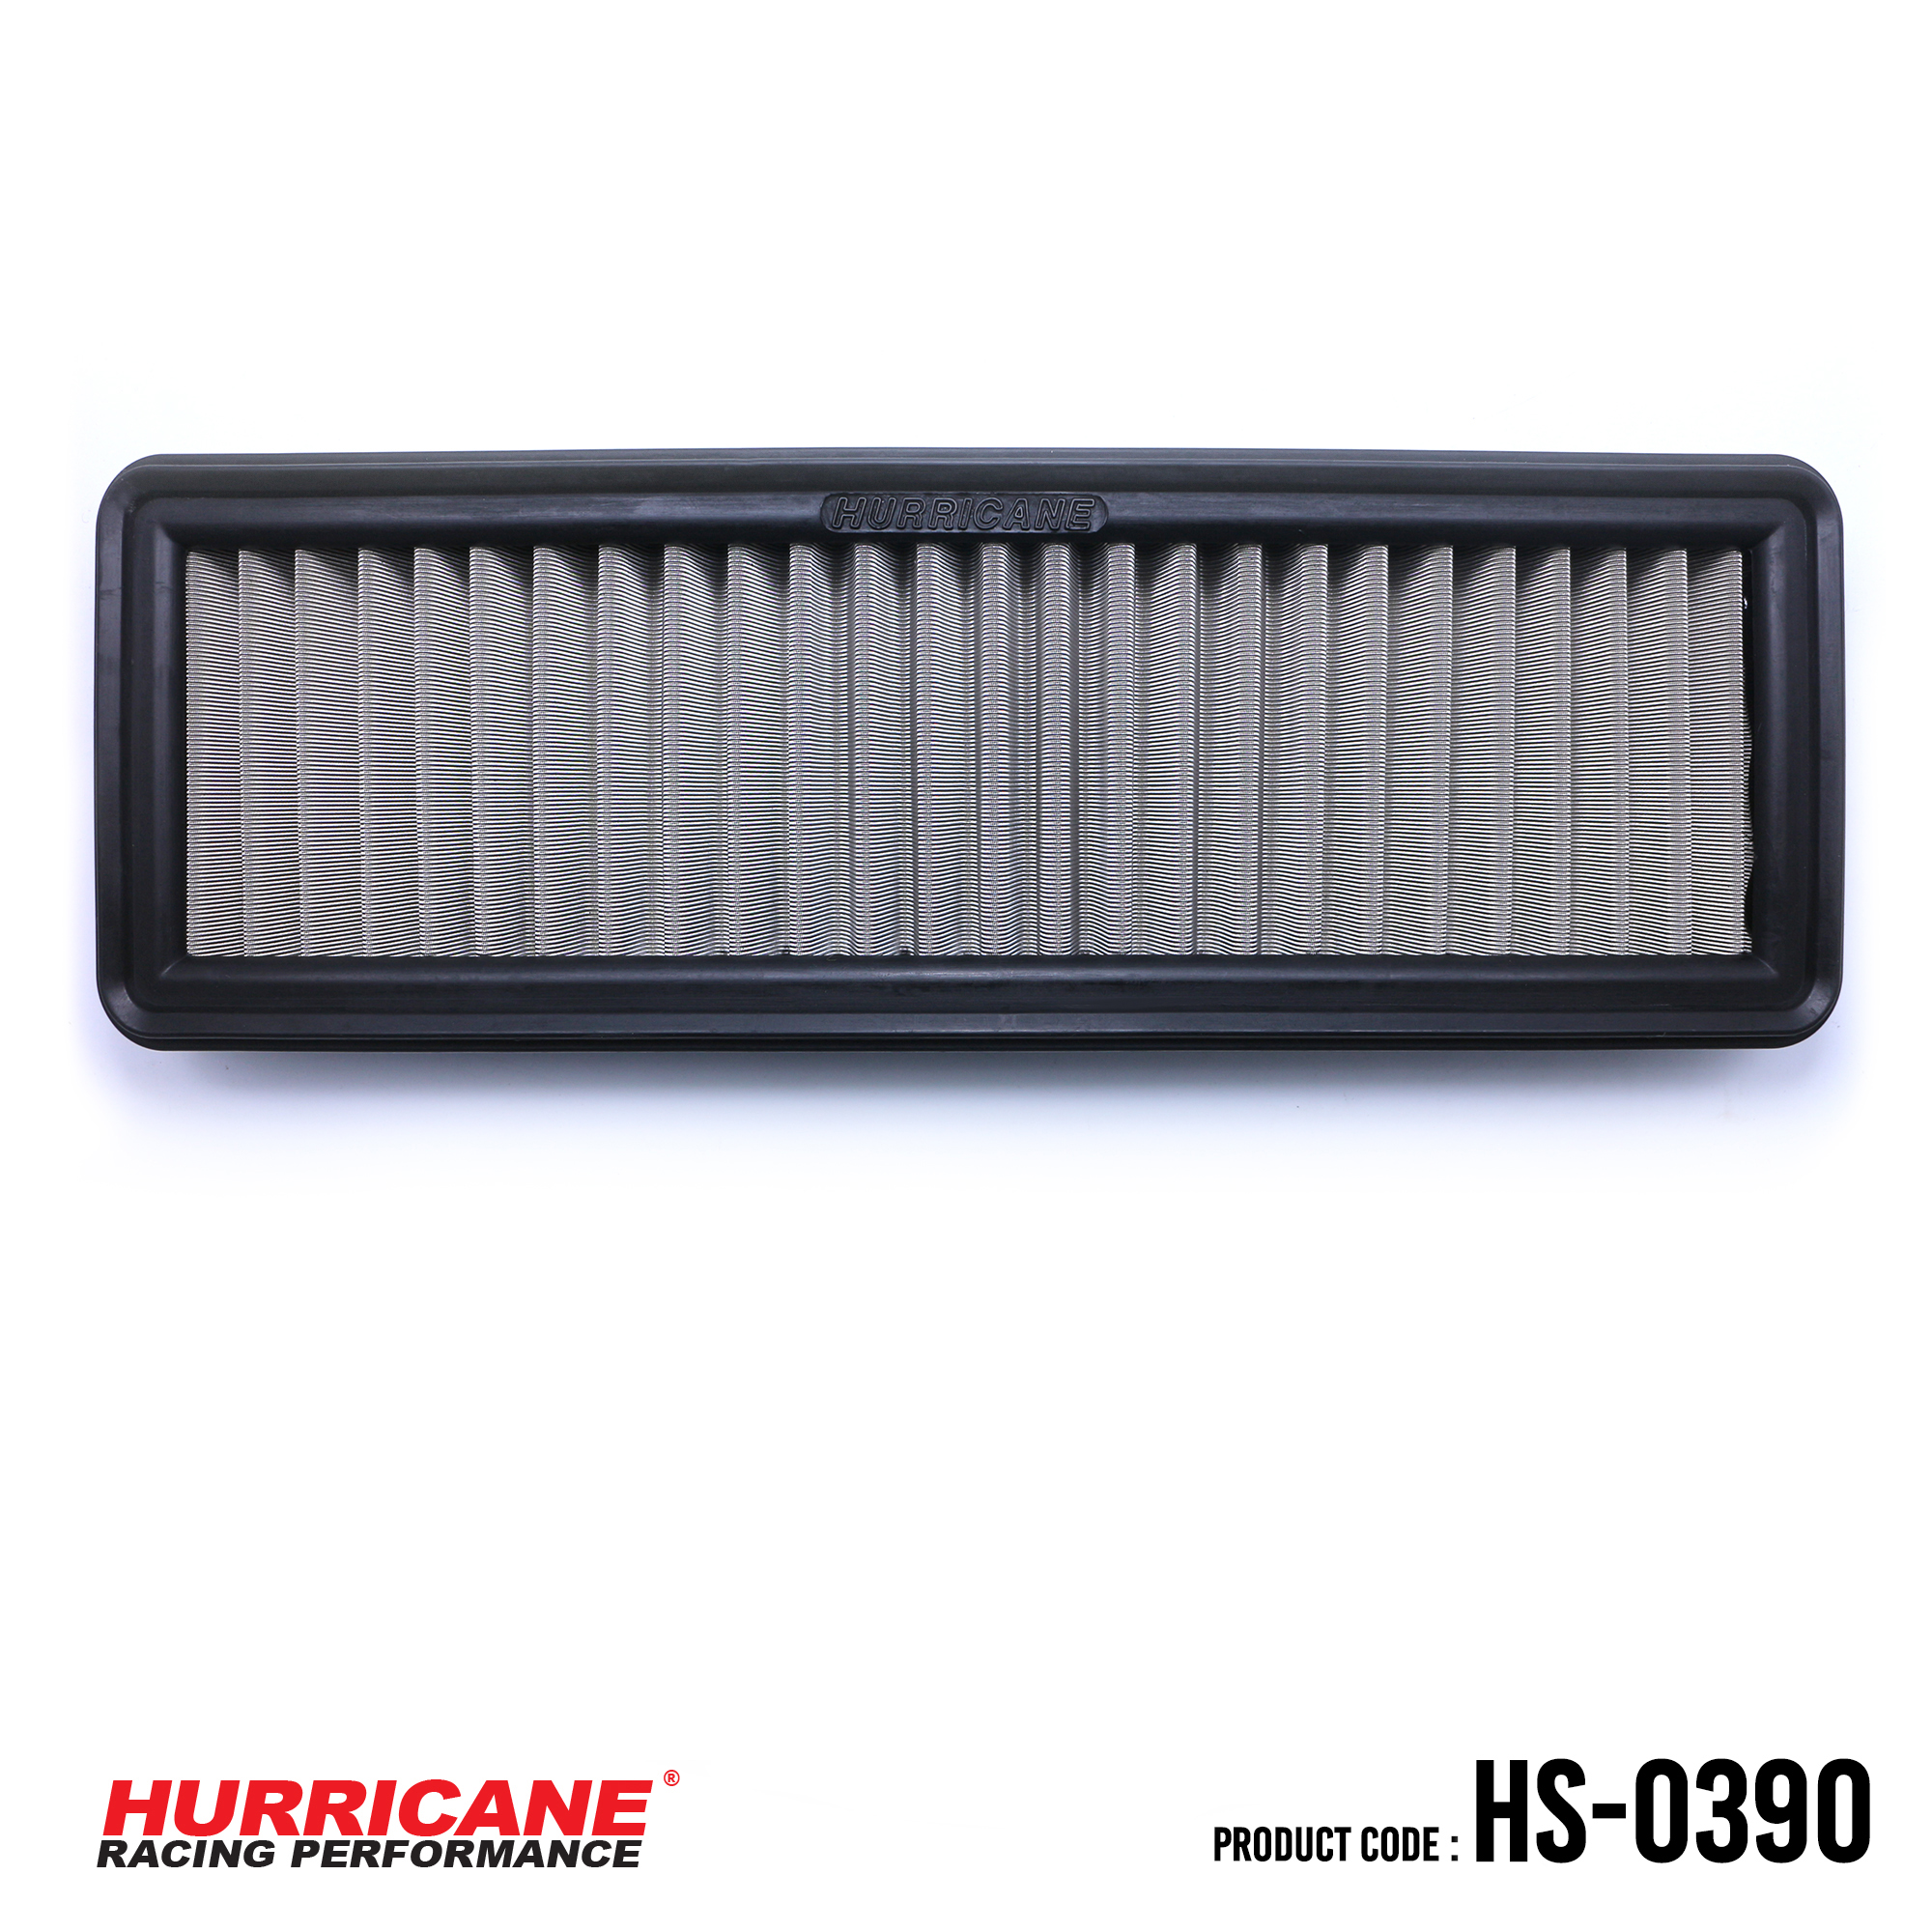 HURRICANE STAINLESS STEEL AIR FILTER FOR HS-0390 BMW